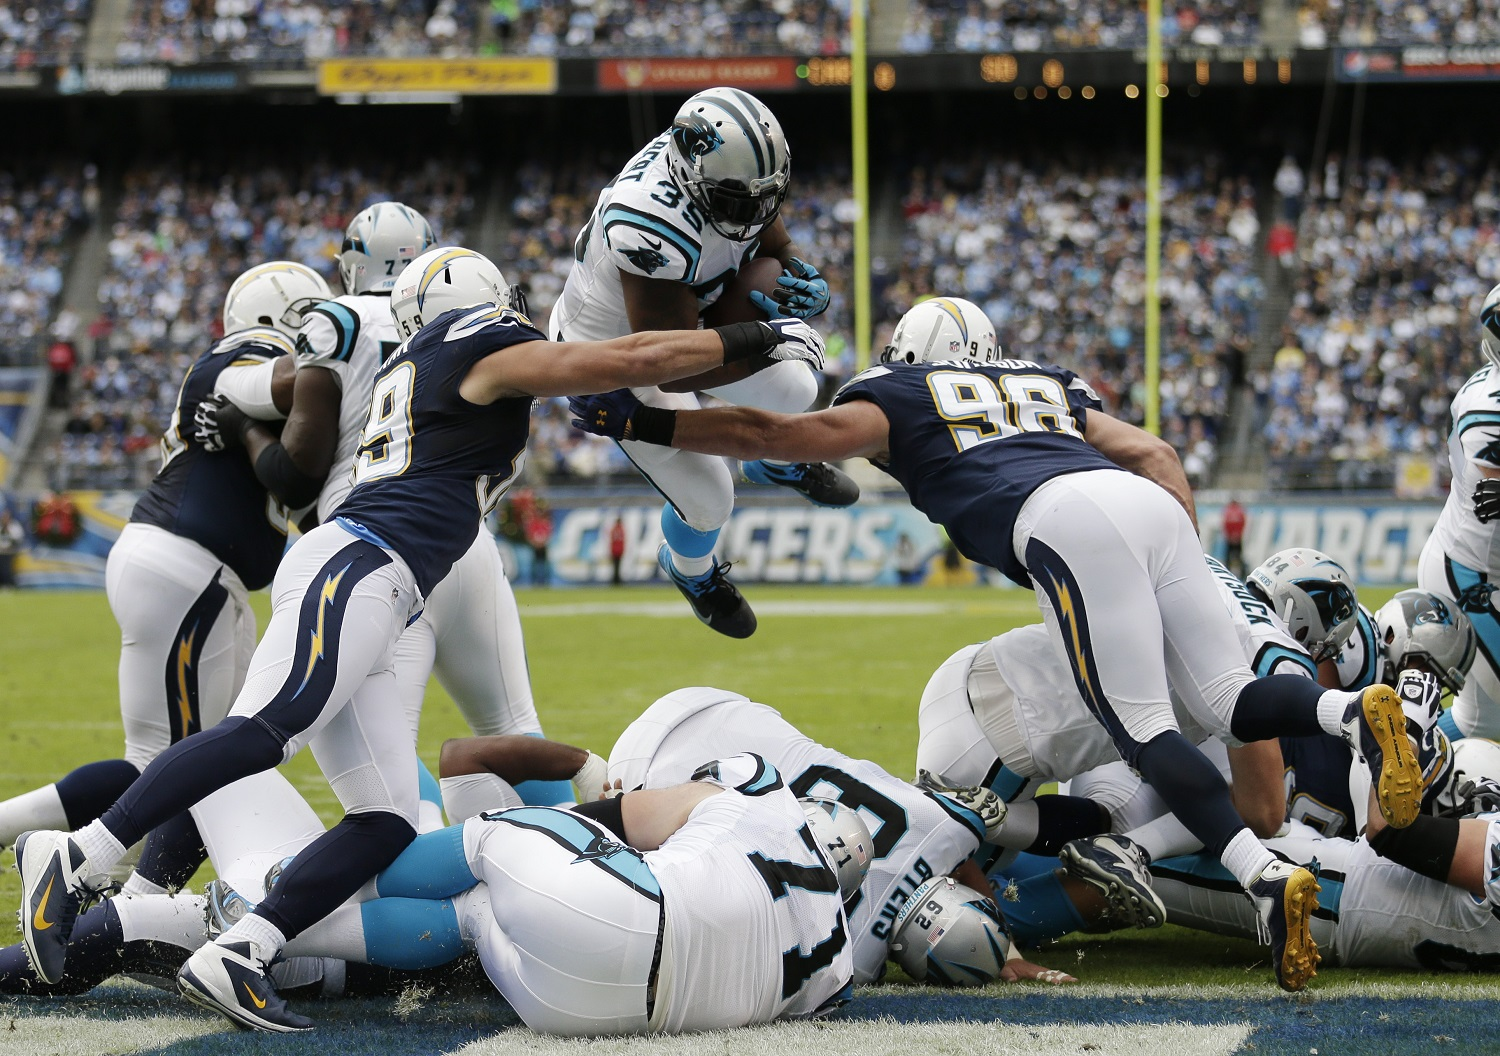 Carolina Panthers fullback Mike Tolbert  sails over the top of the San Diego Chargers defense to score a touchdown during the first half of a NFL football game Sunday, Dec. 16, 2012, in San Diego. (AP Photo/Gregory Bull)